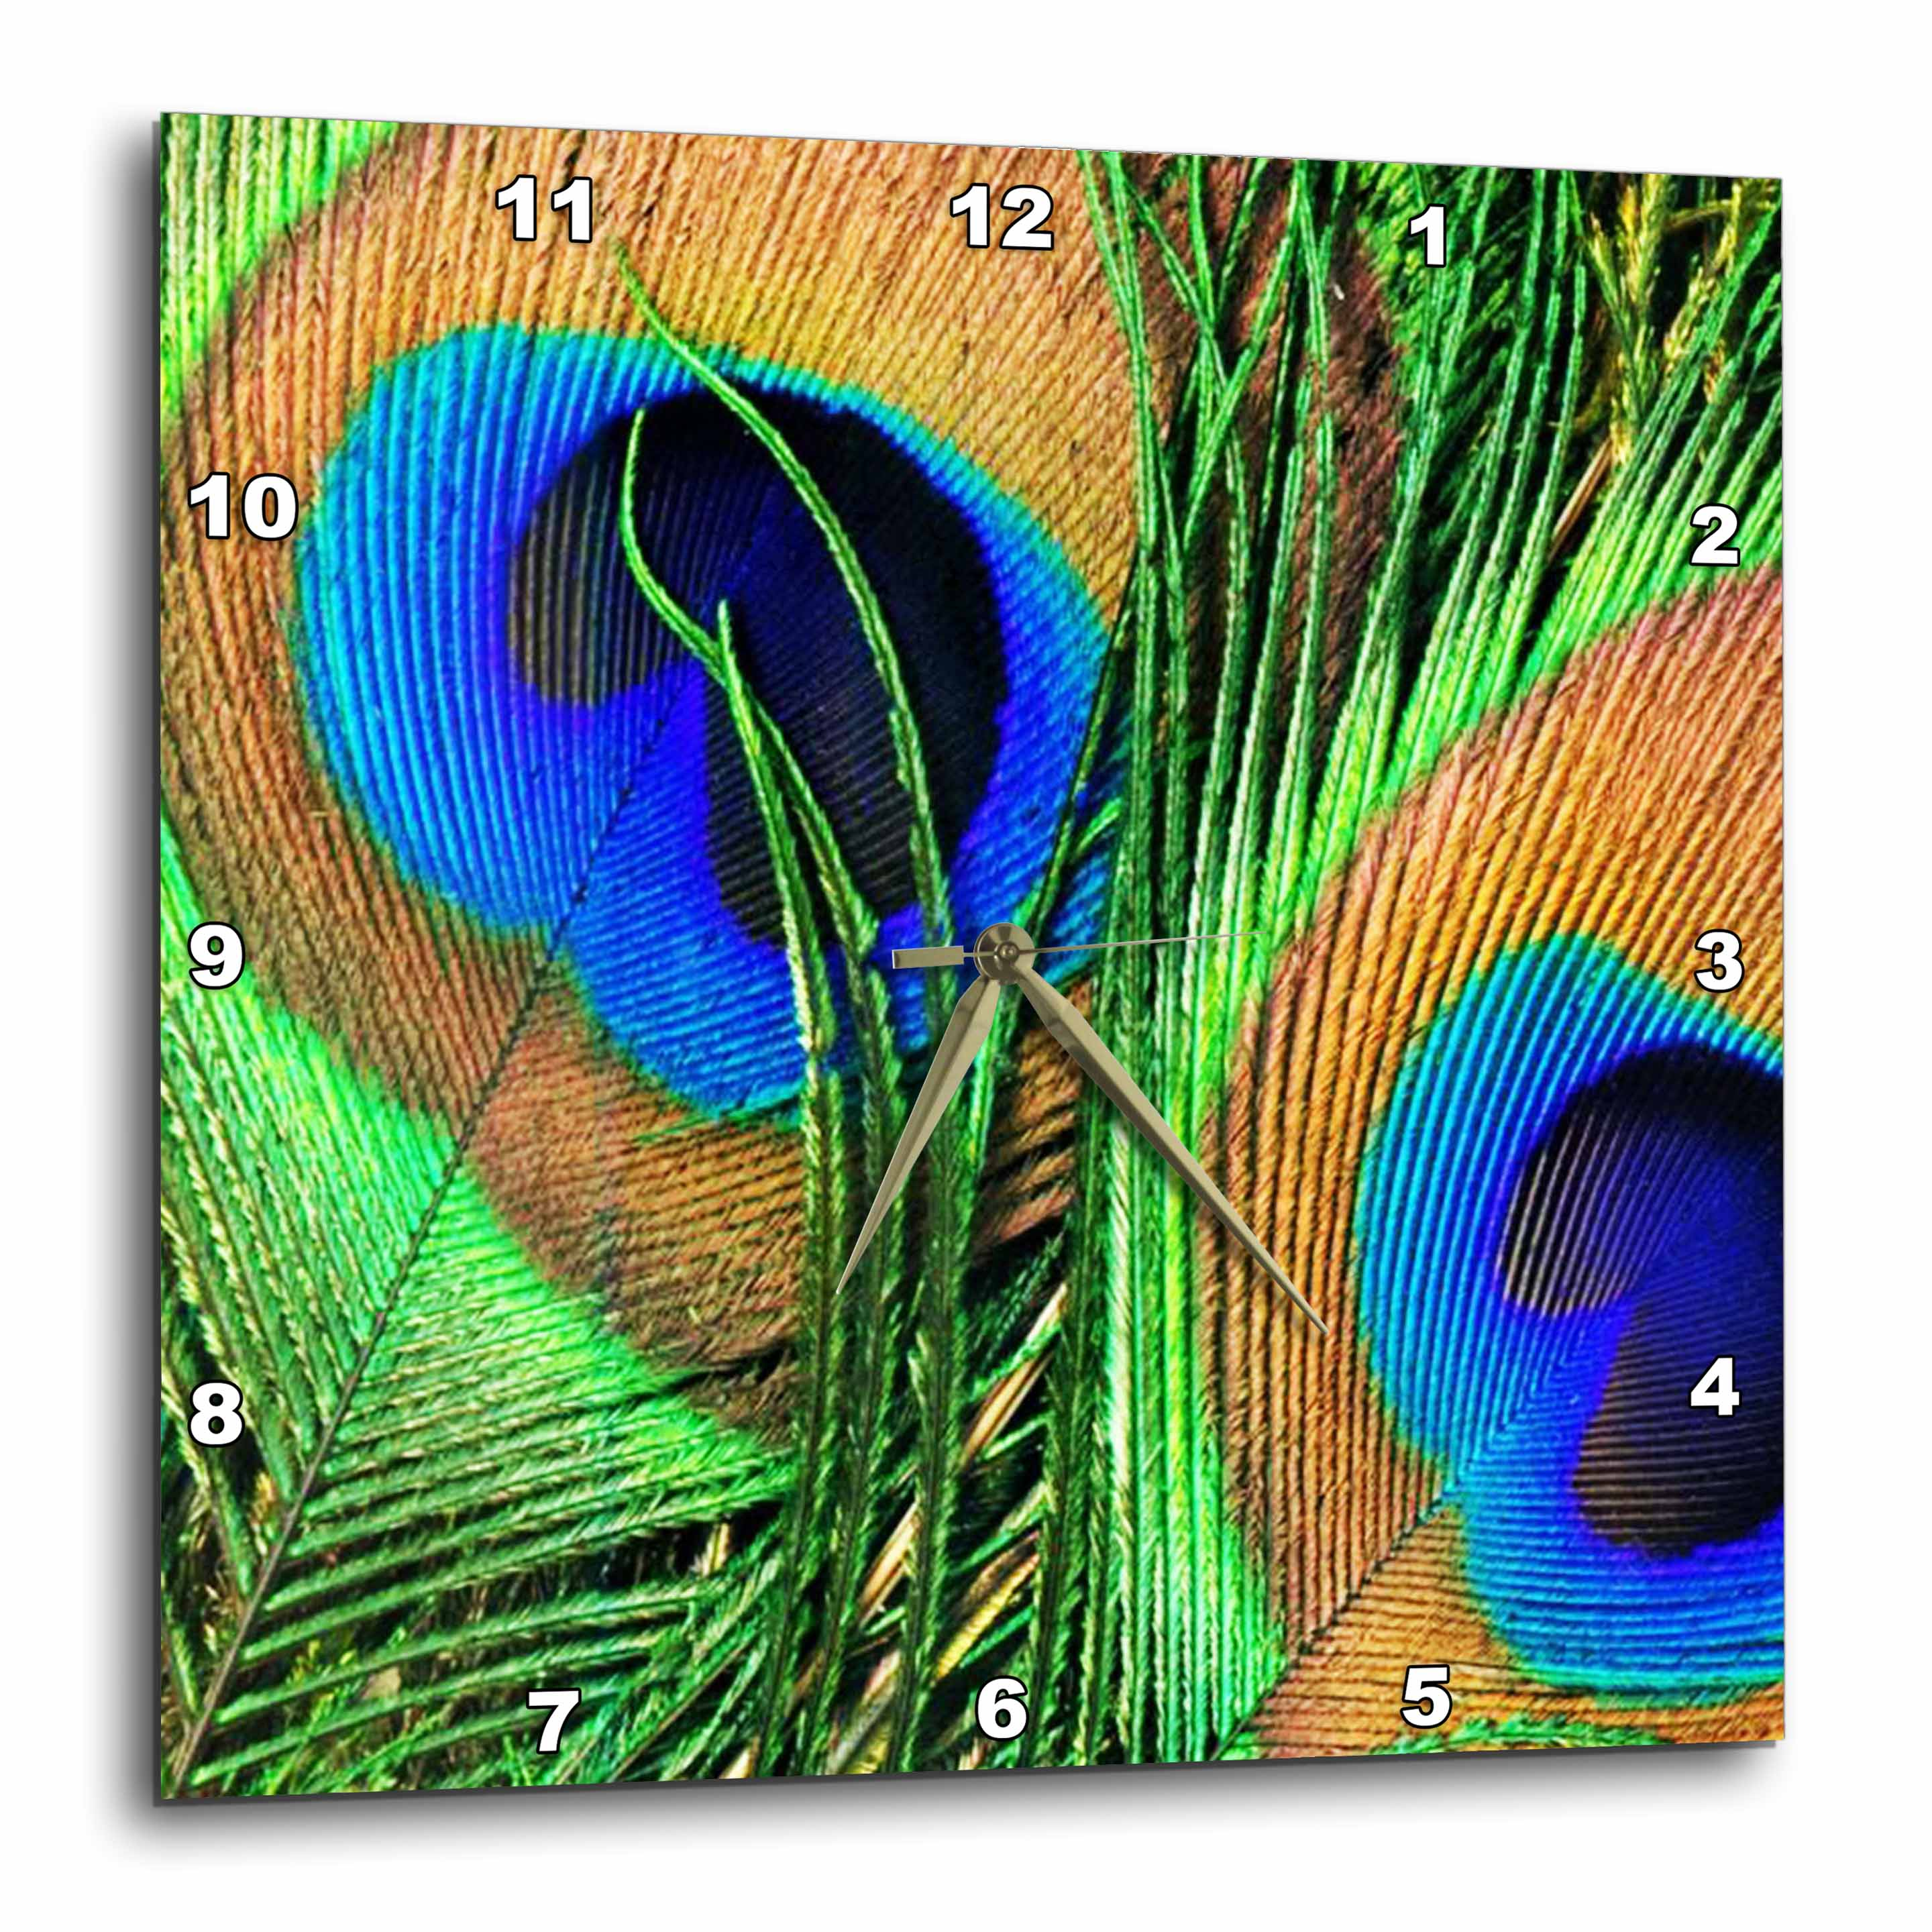 3dRose Blue, green, and orange colored peacock feathers, Wall Clock, 15 by 15-inch